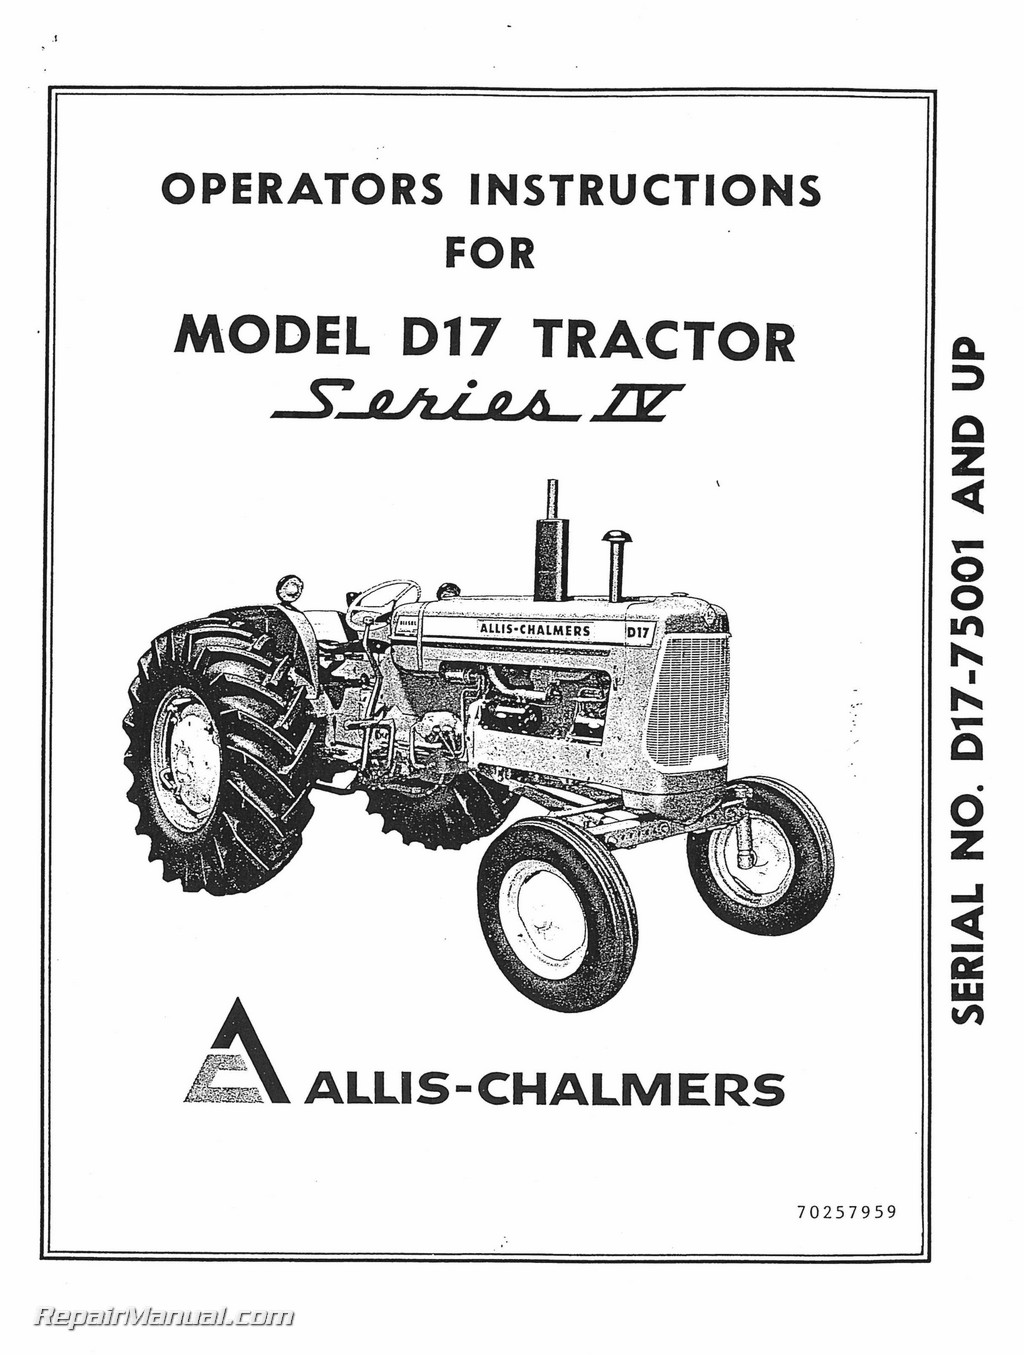 Allis Chalmers D-17 Series Iv Tractor Operators Manual